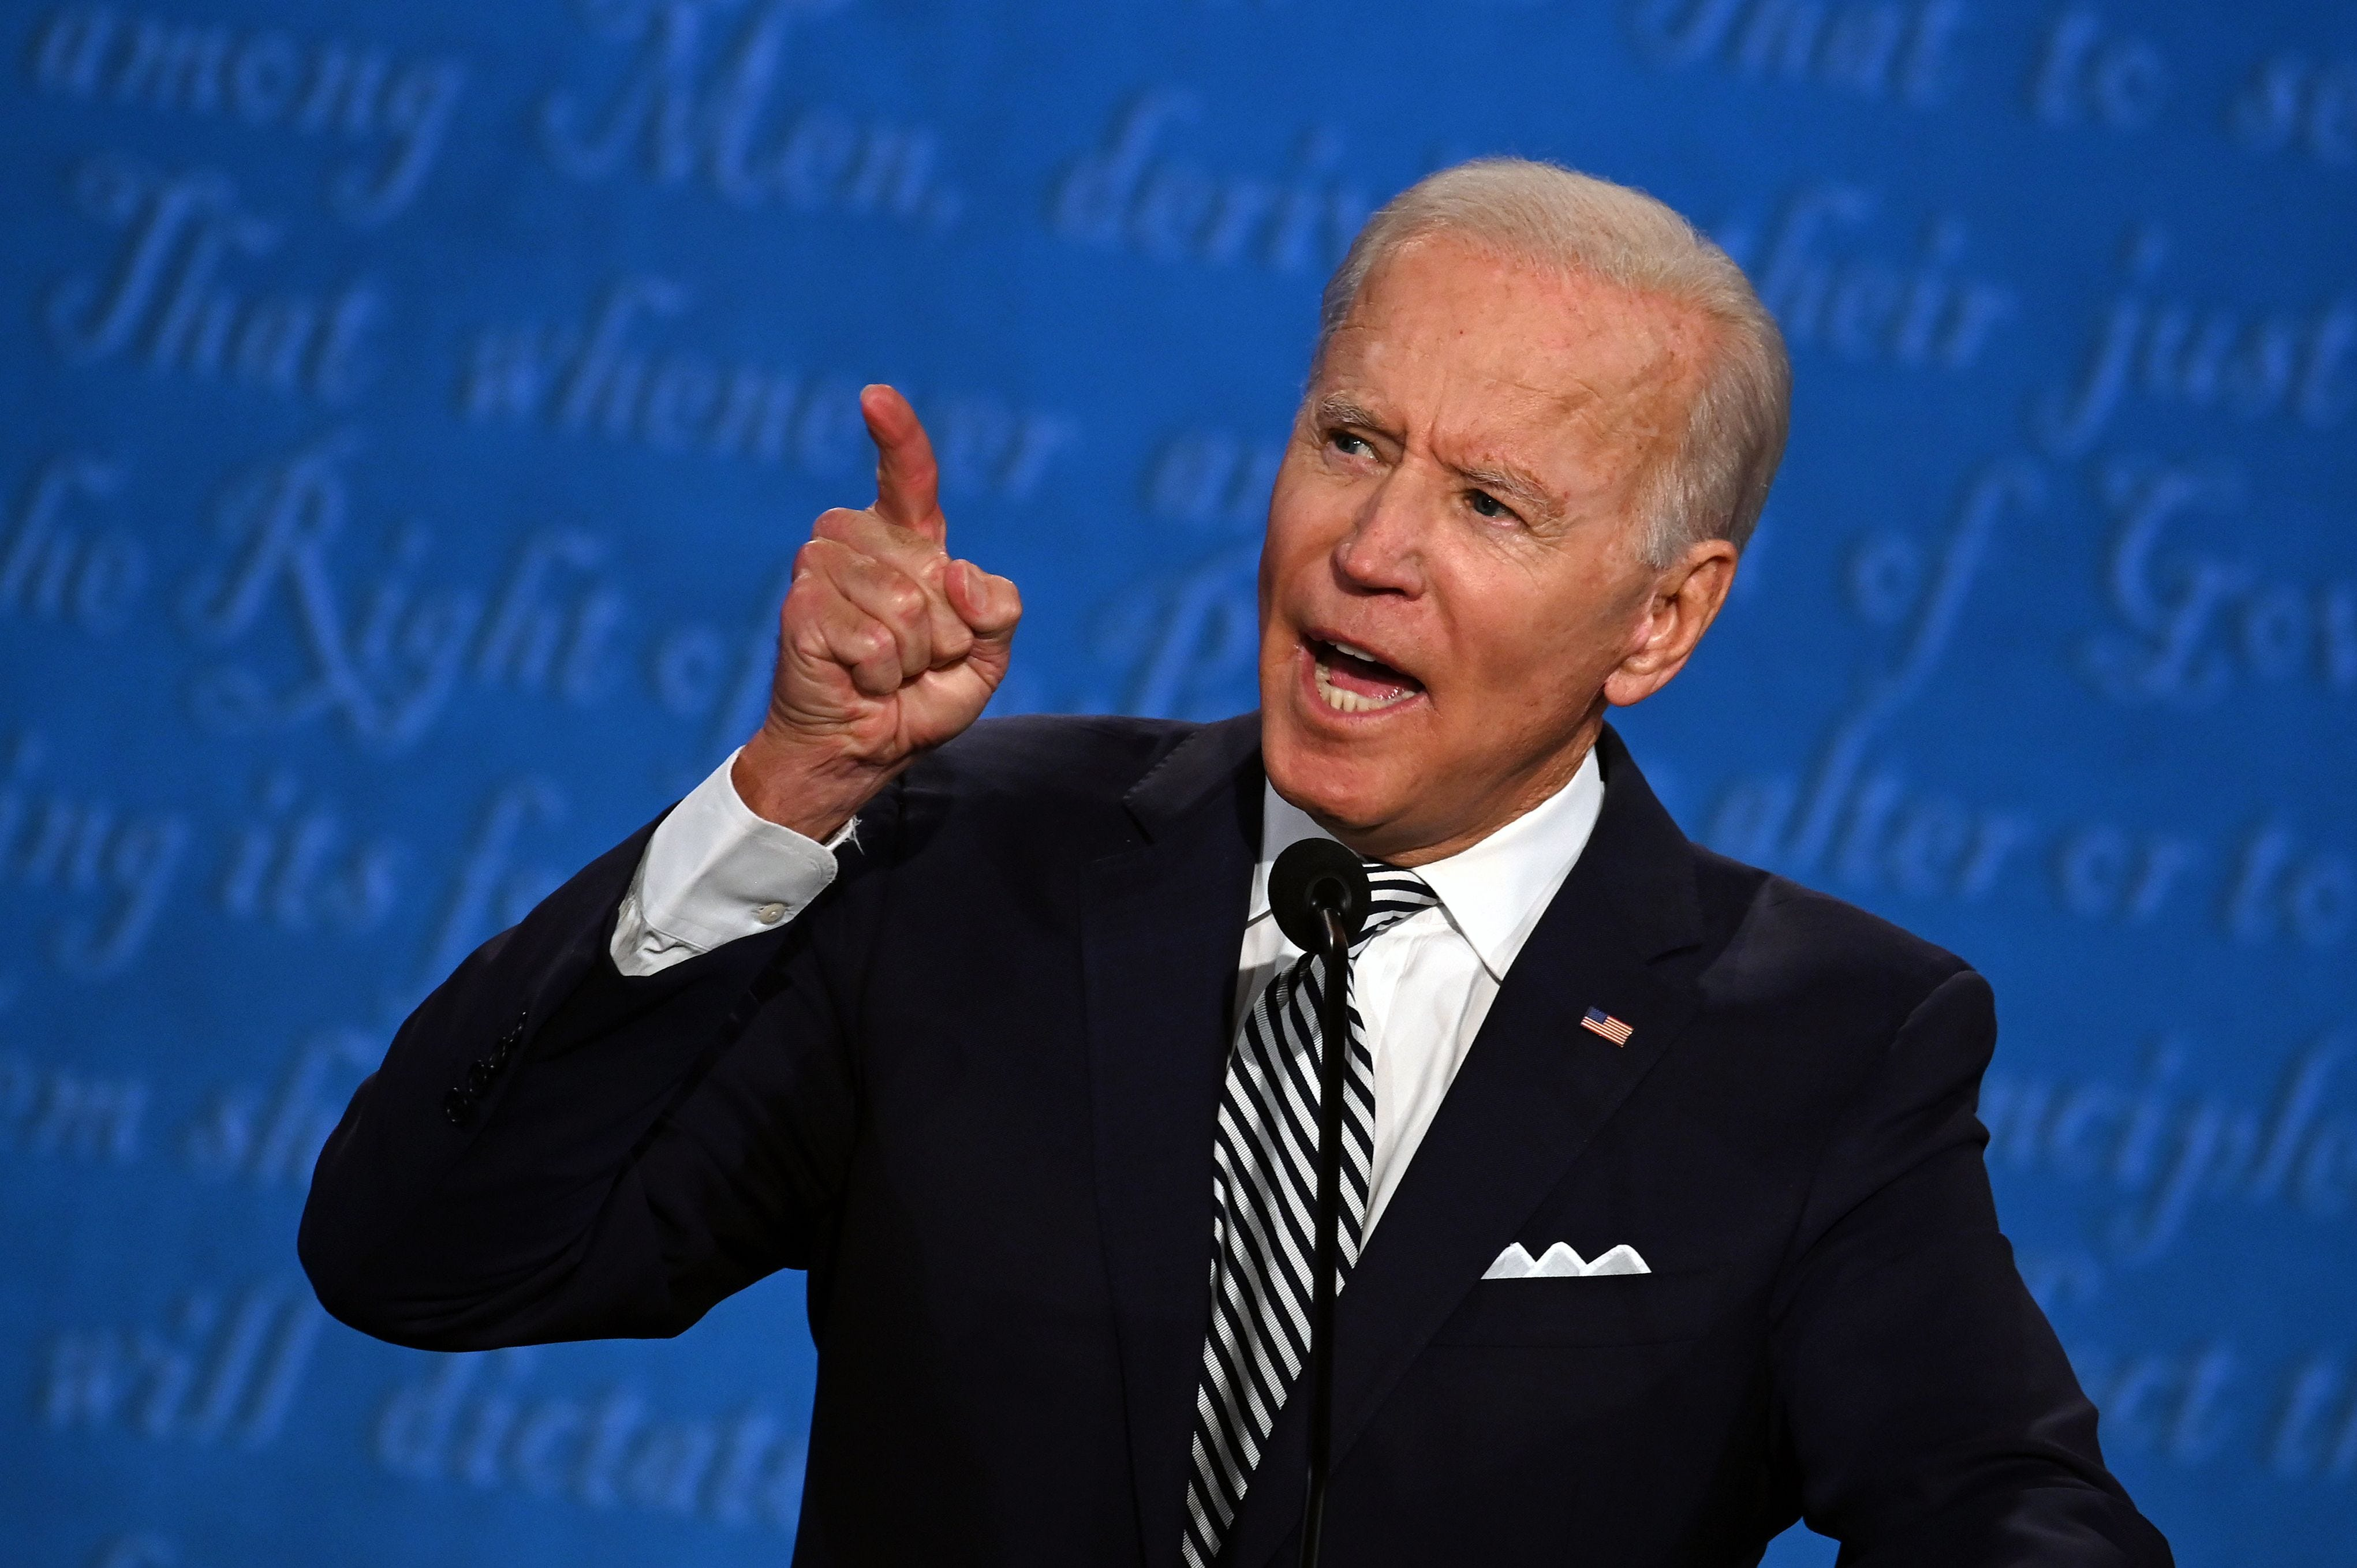 No Joe Biden Did Not Wear A Wire During The Presidential Debate